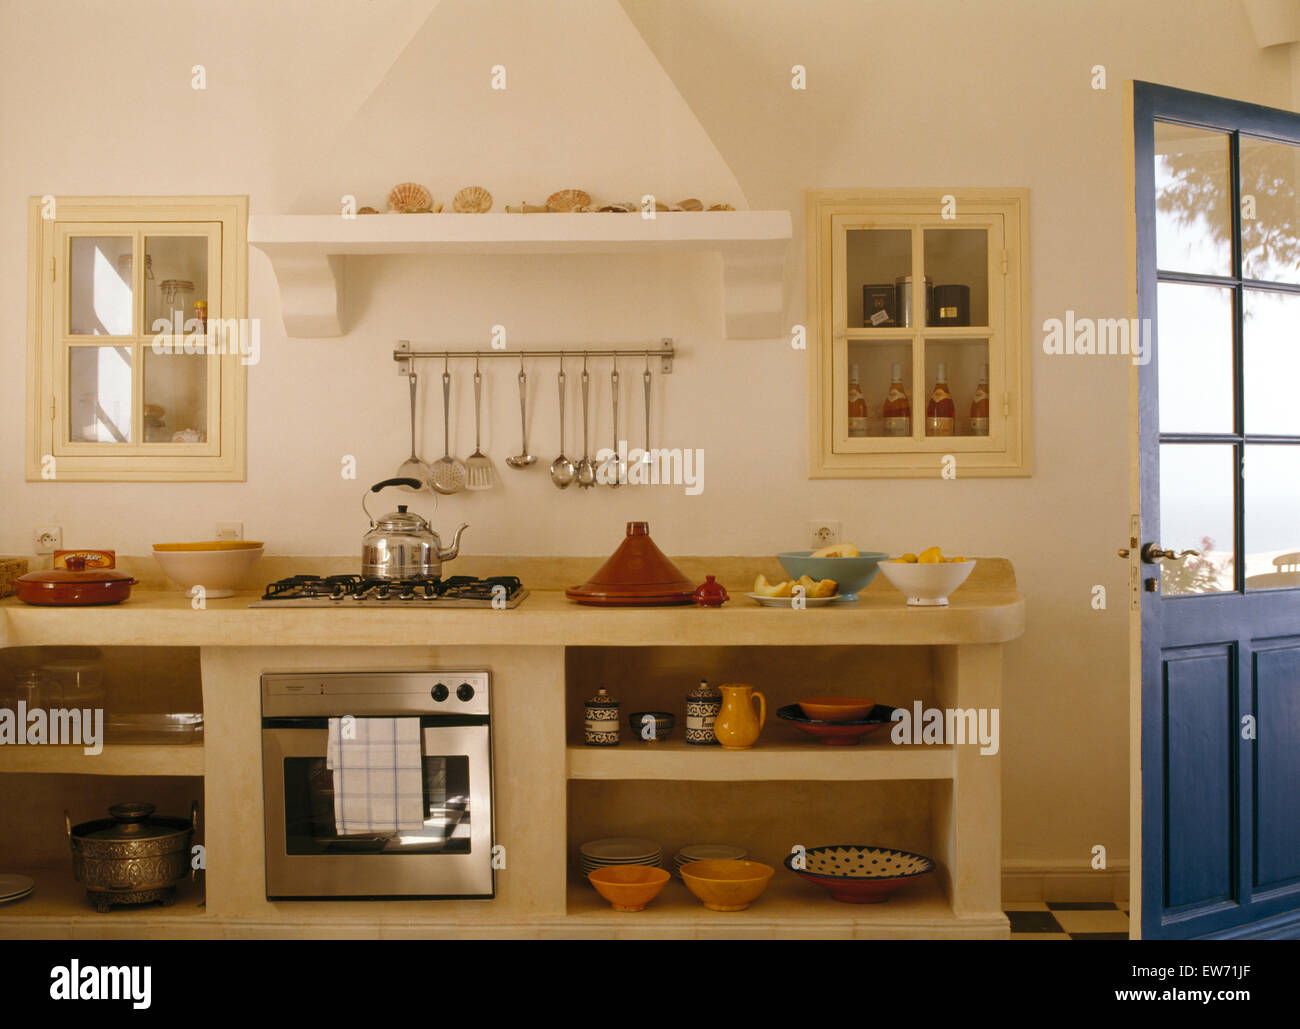 Glass Doors On Alcove Cupboards Above Polished Concrete Shelves With Stainless Steel Oven In Modern Moroccan Kitchen